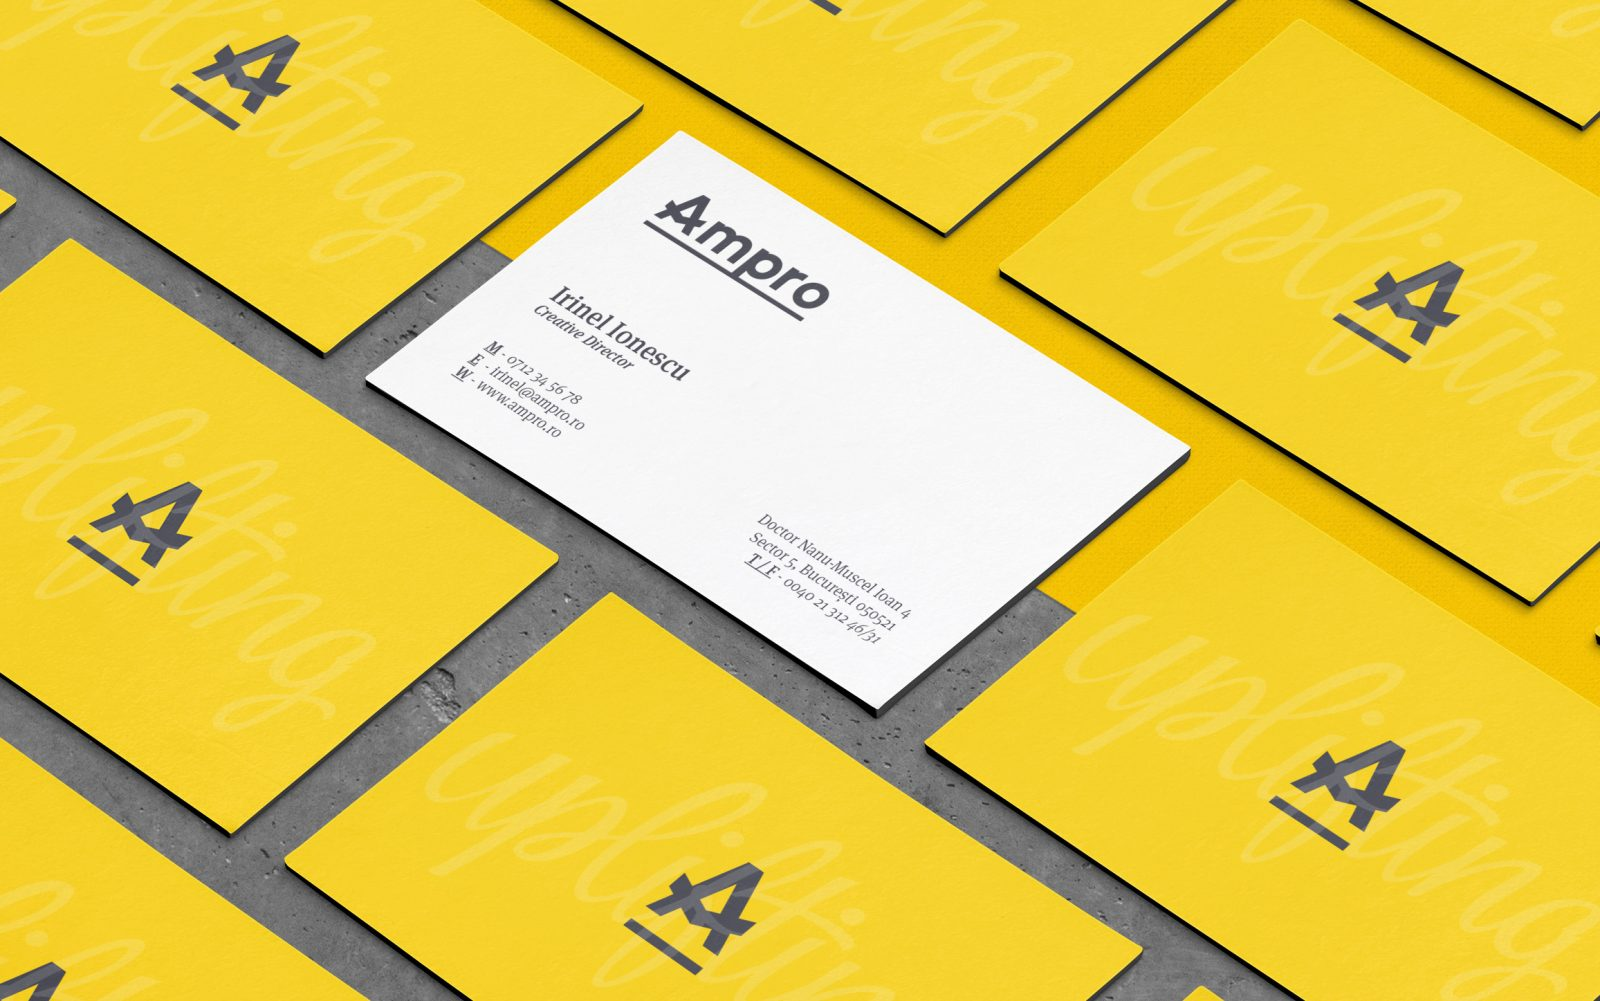 Inhouse Made Rebranding Project for Ampro Design Consultants